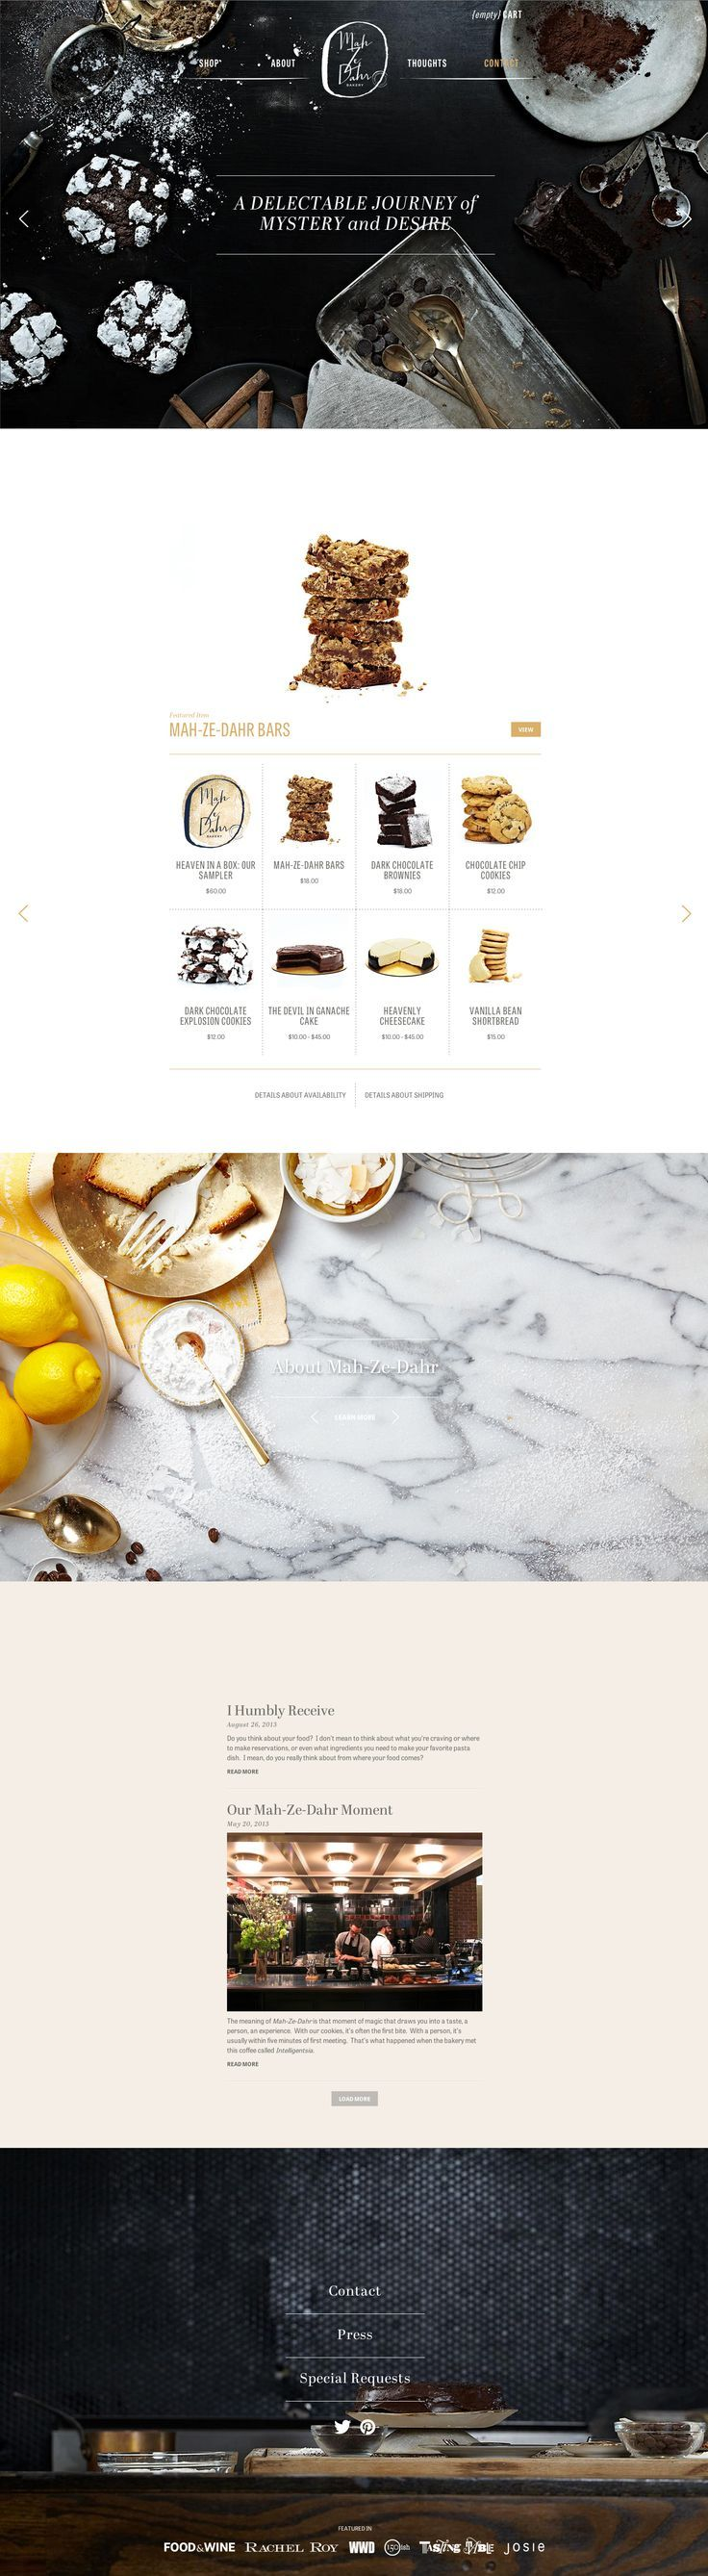 Backery #webdesign